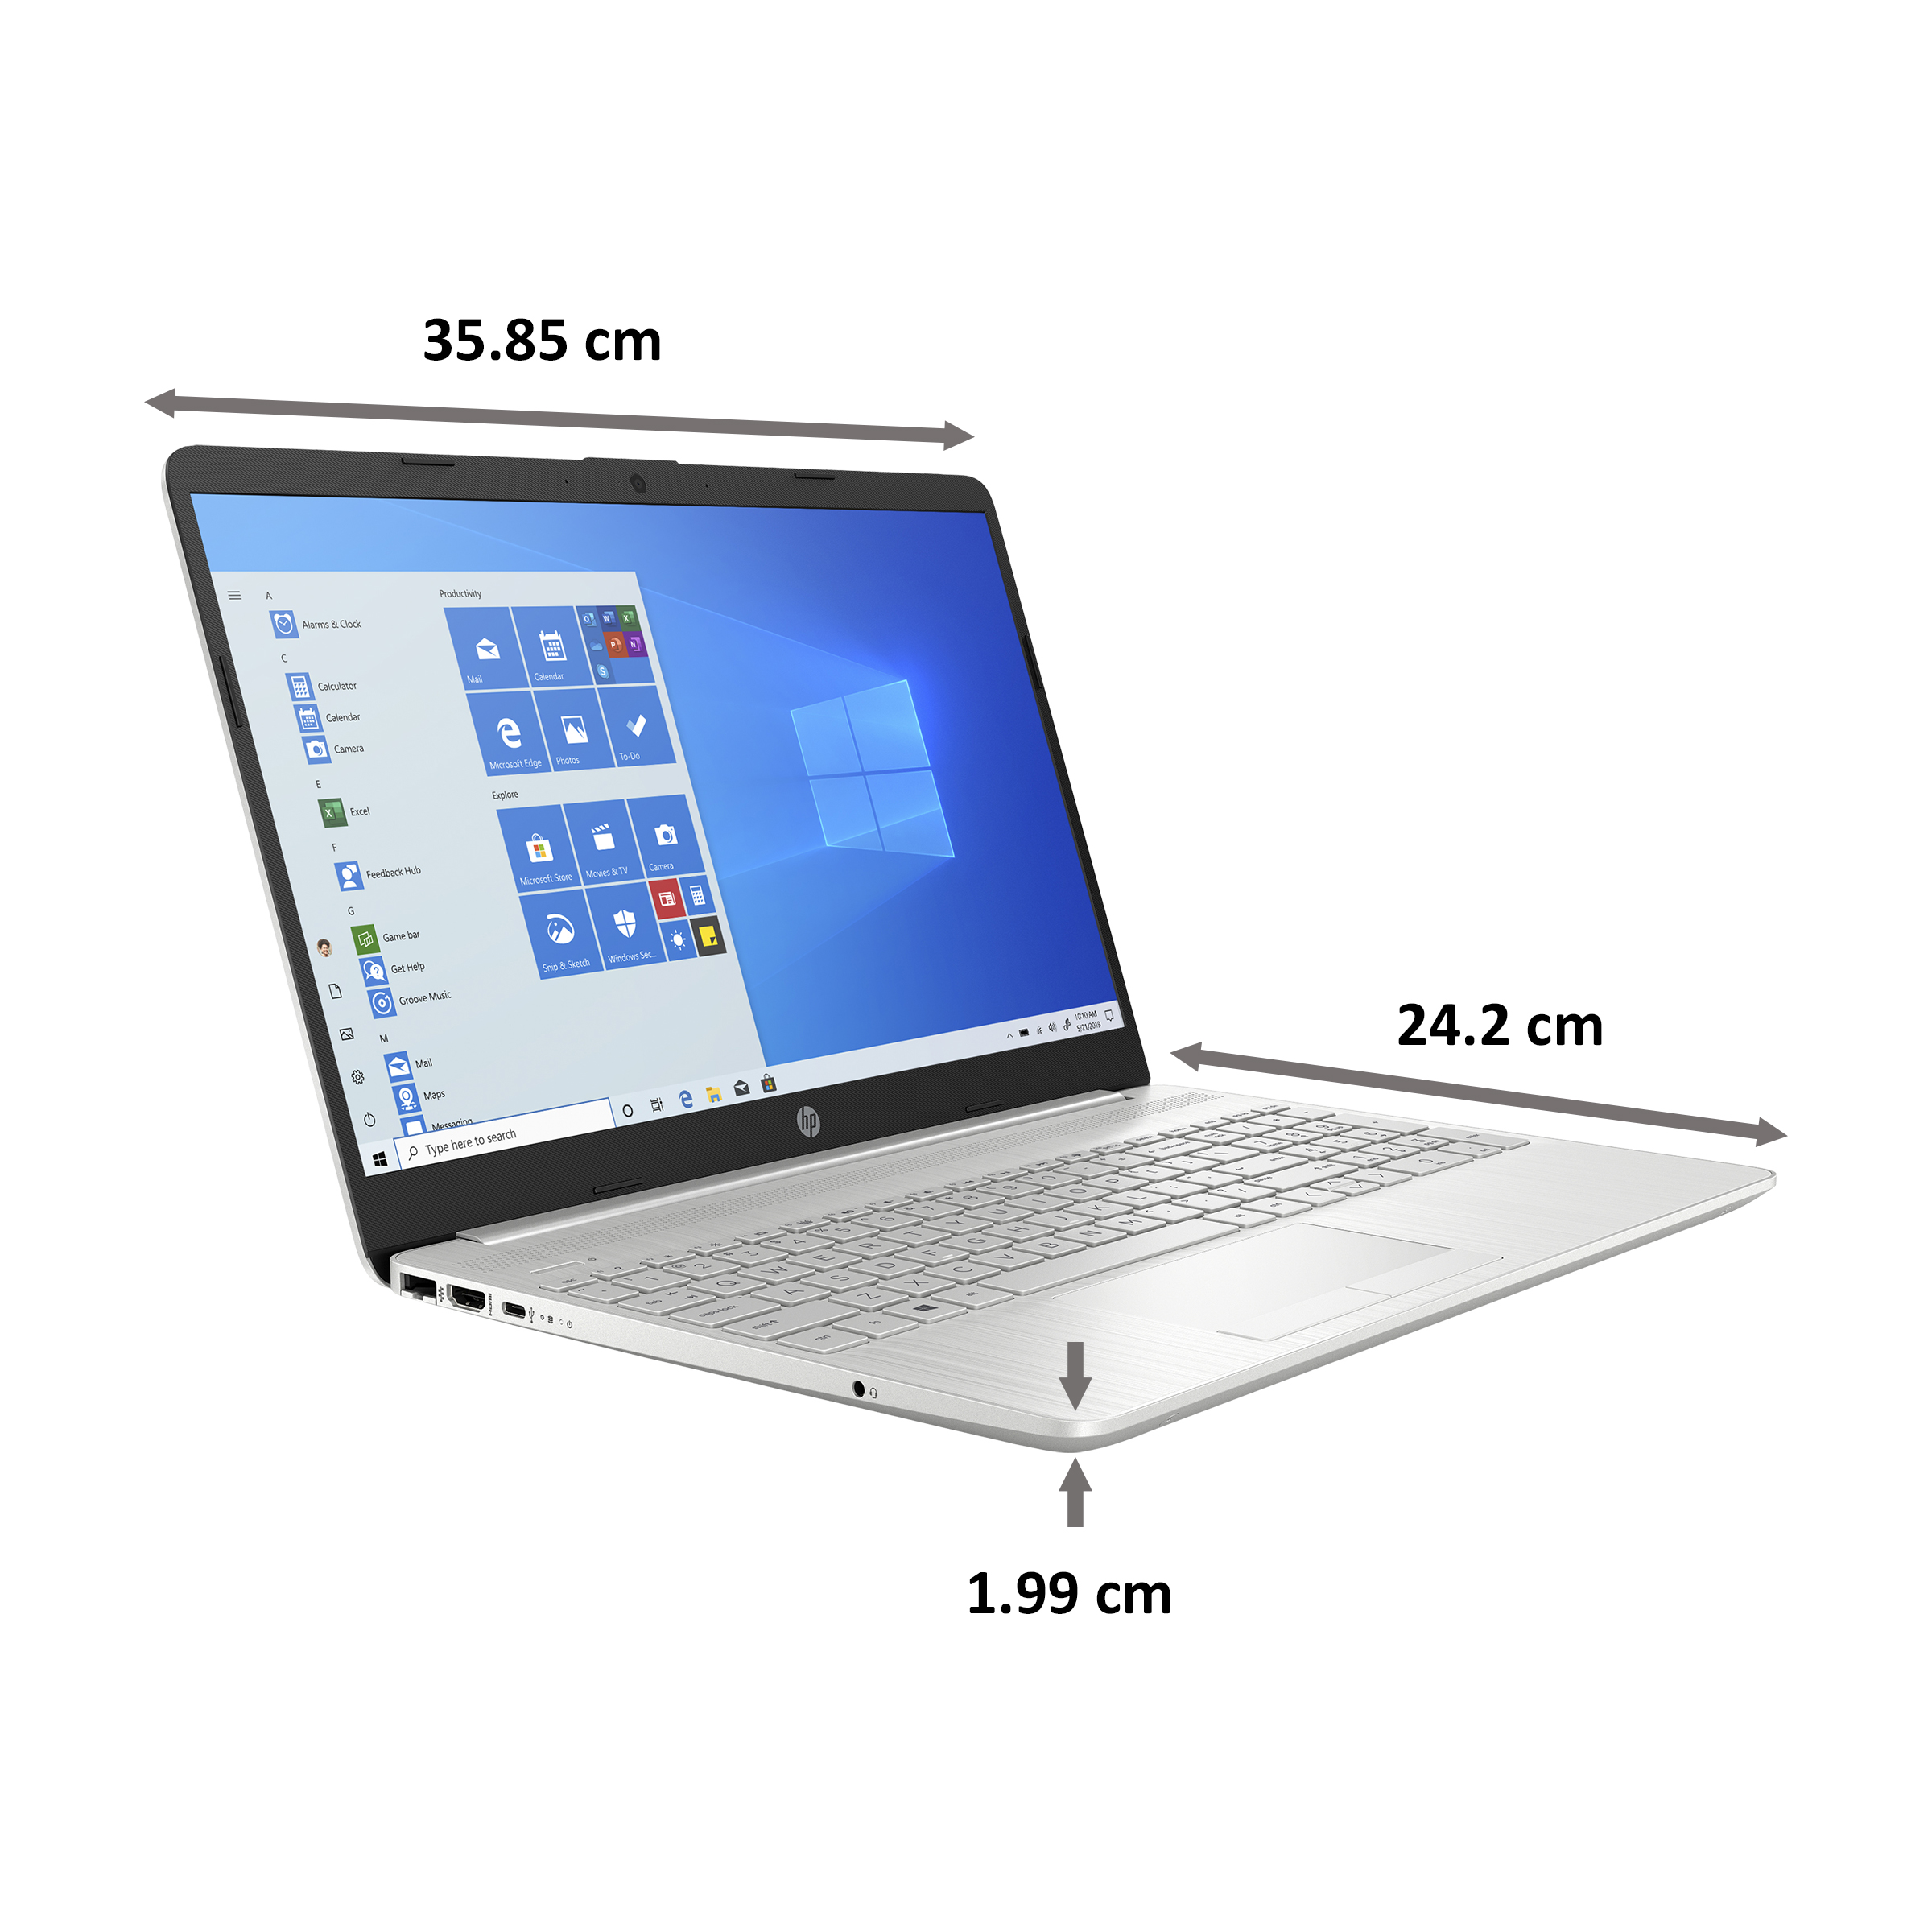 HP 15s-dr3001TU (34W43PA#ACJ) Core i3 11th Gen Windows 10 Home Thin and Light Laptop (8GB RAM, 1TB HDD, Intel UHD Graphics, 39.6cm, Natural Silver) 2